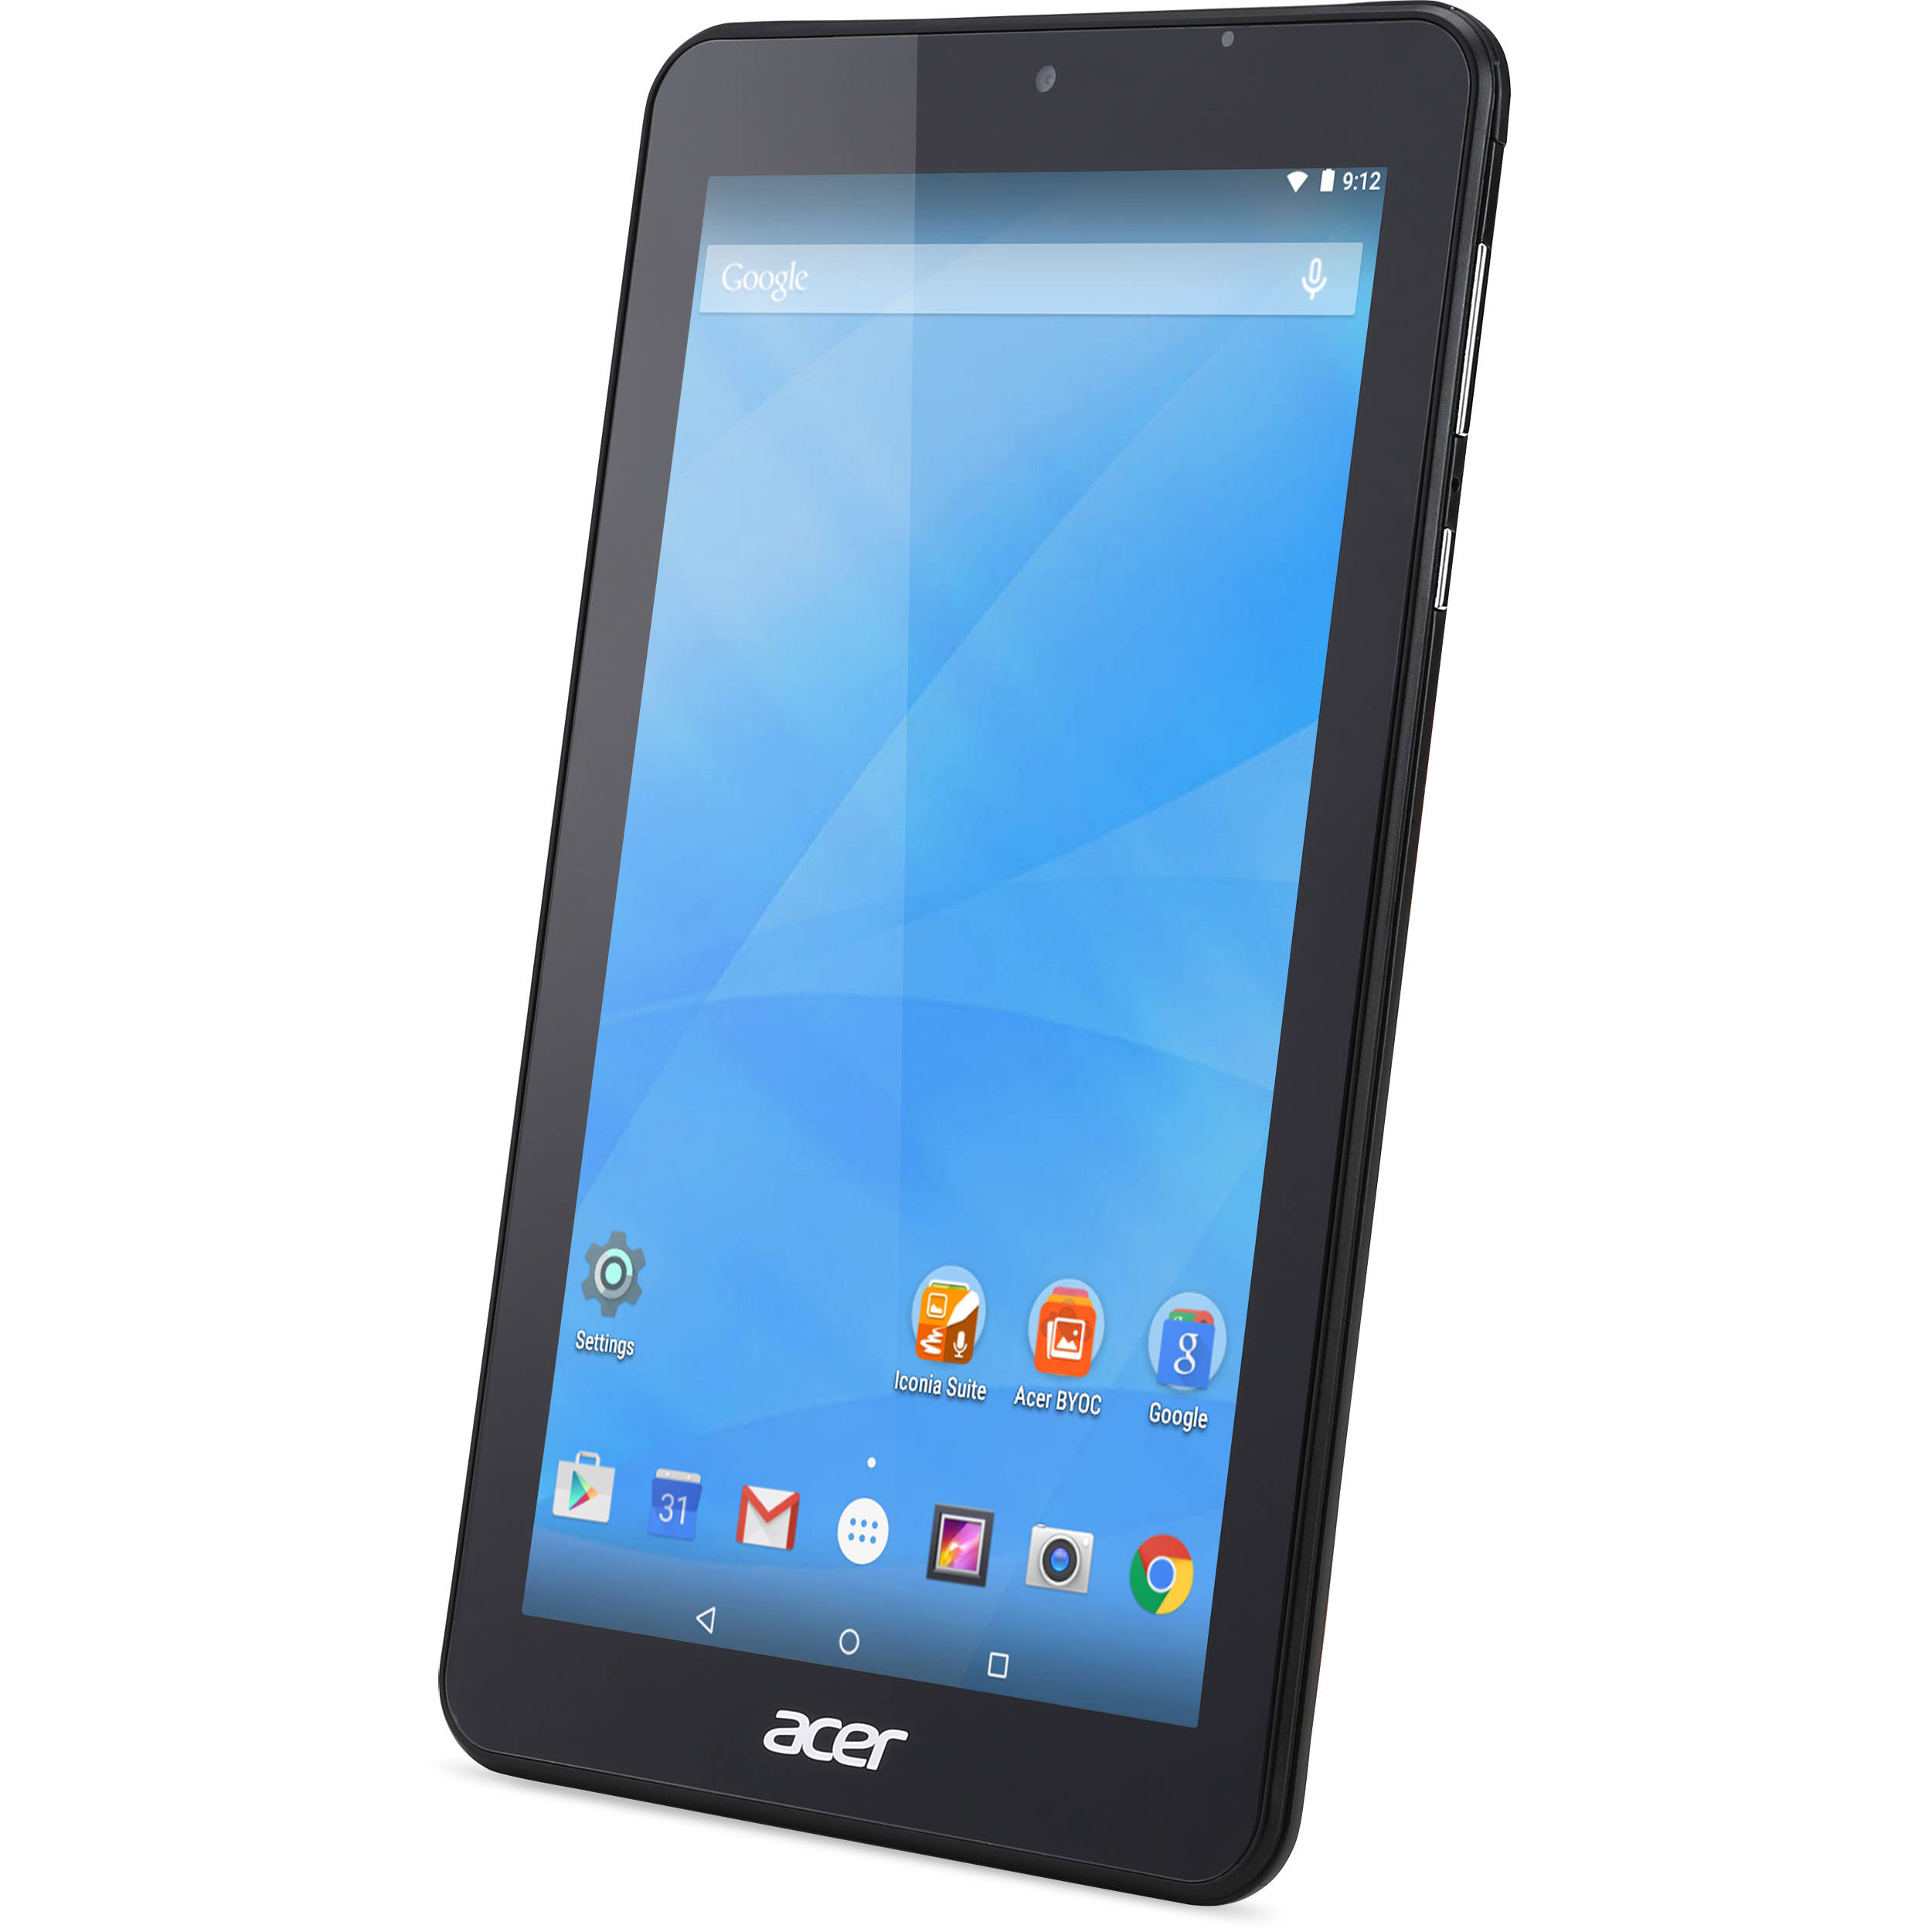 Acer Iconia 7 One, All The Information about The New Tablet Acer Android